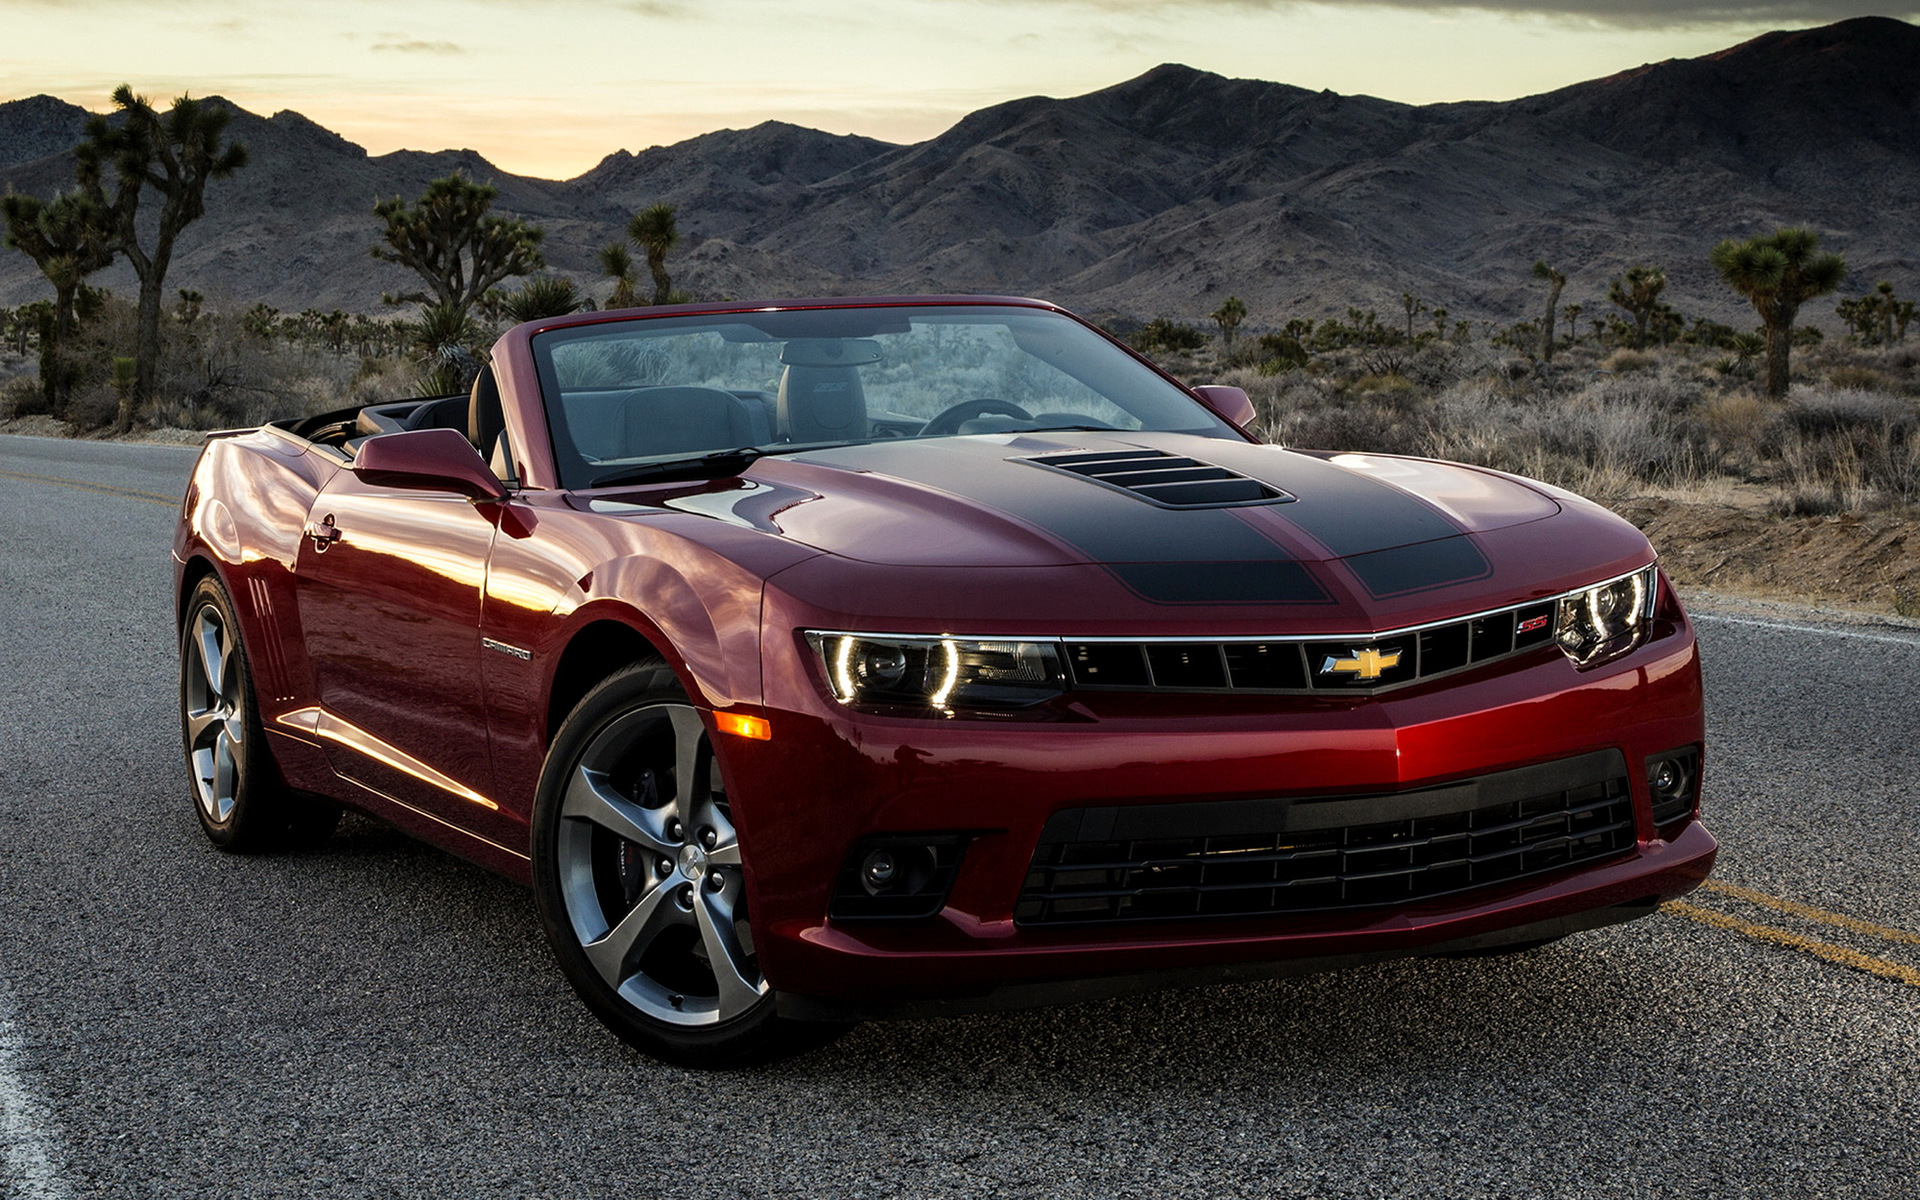 Chevrolet Camaro Ss Convertible 2014 Wallpapers And Hd